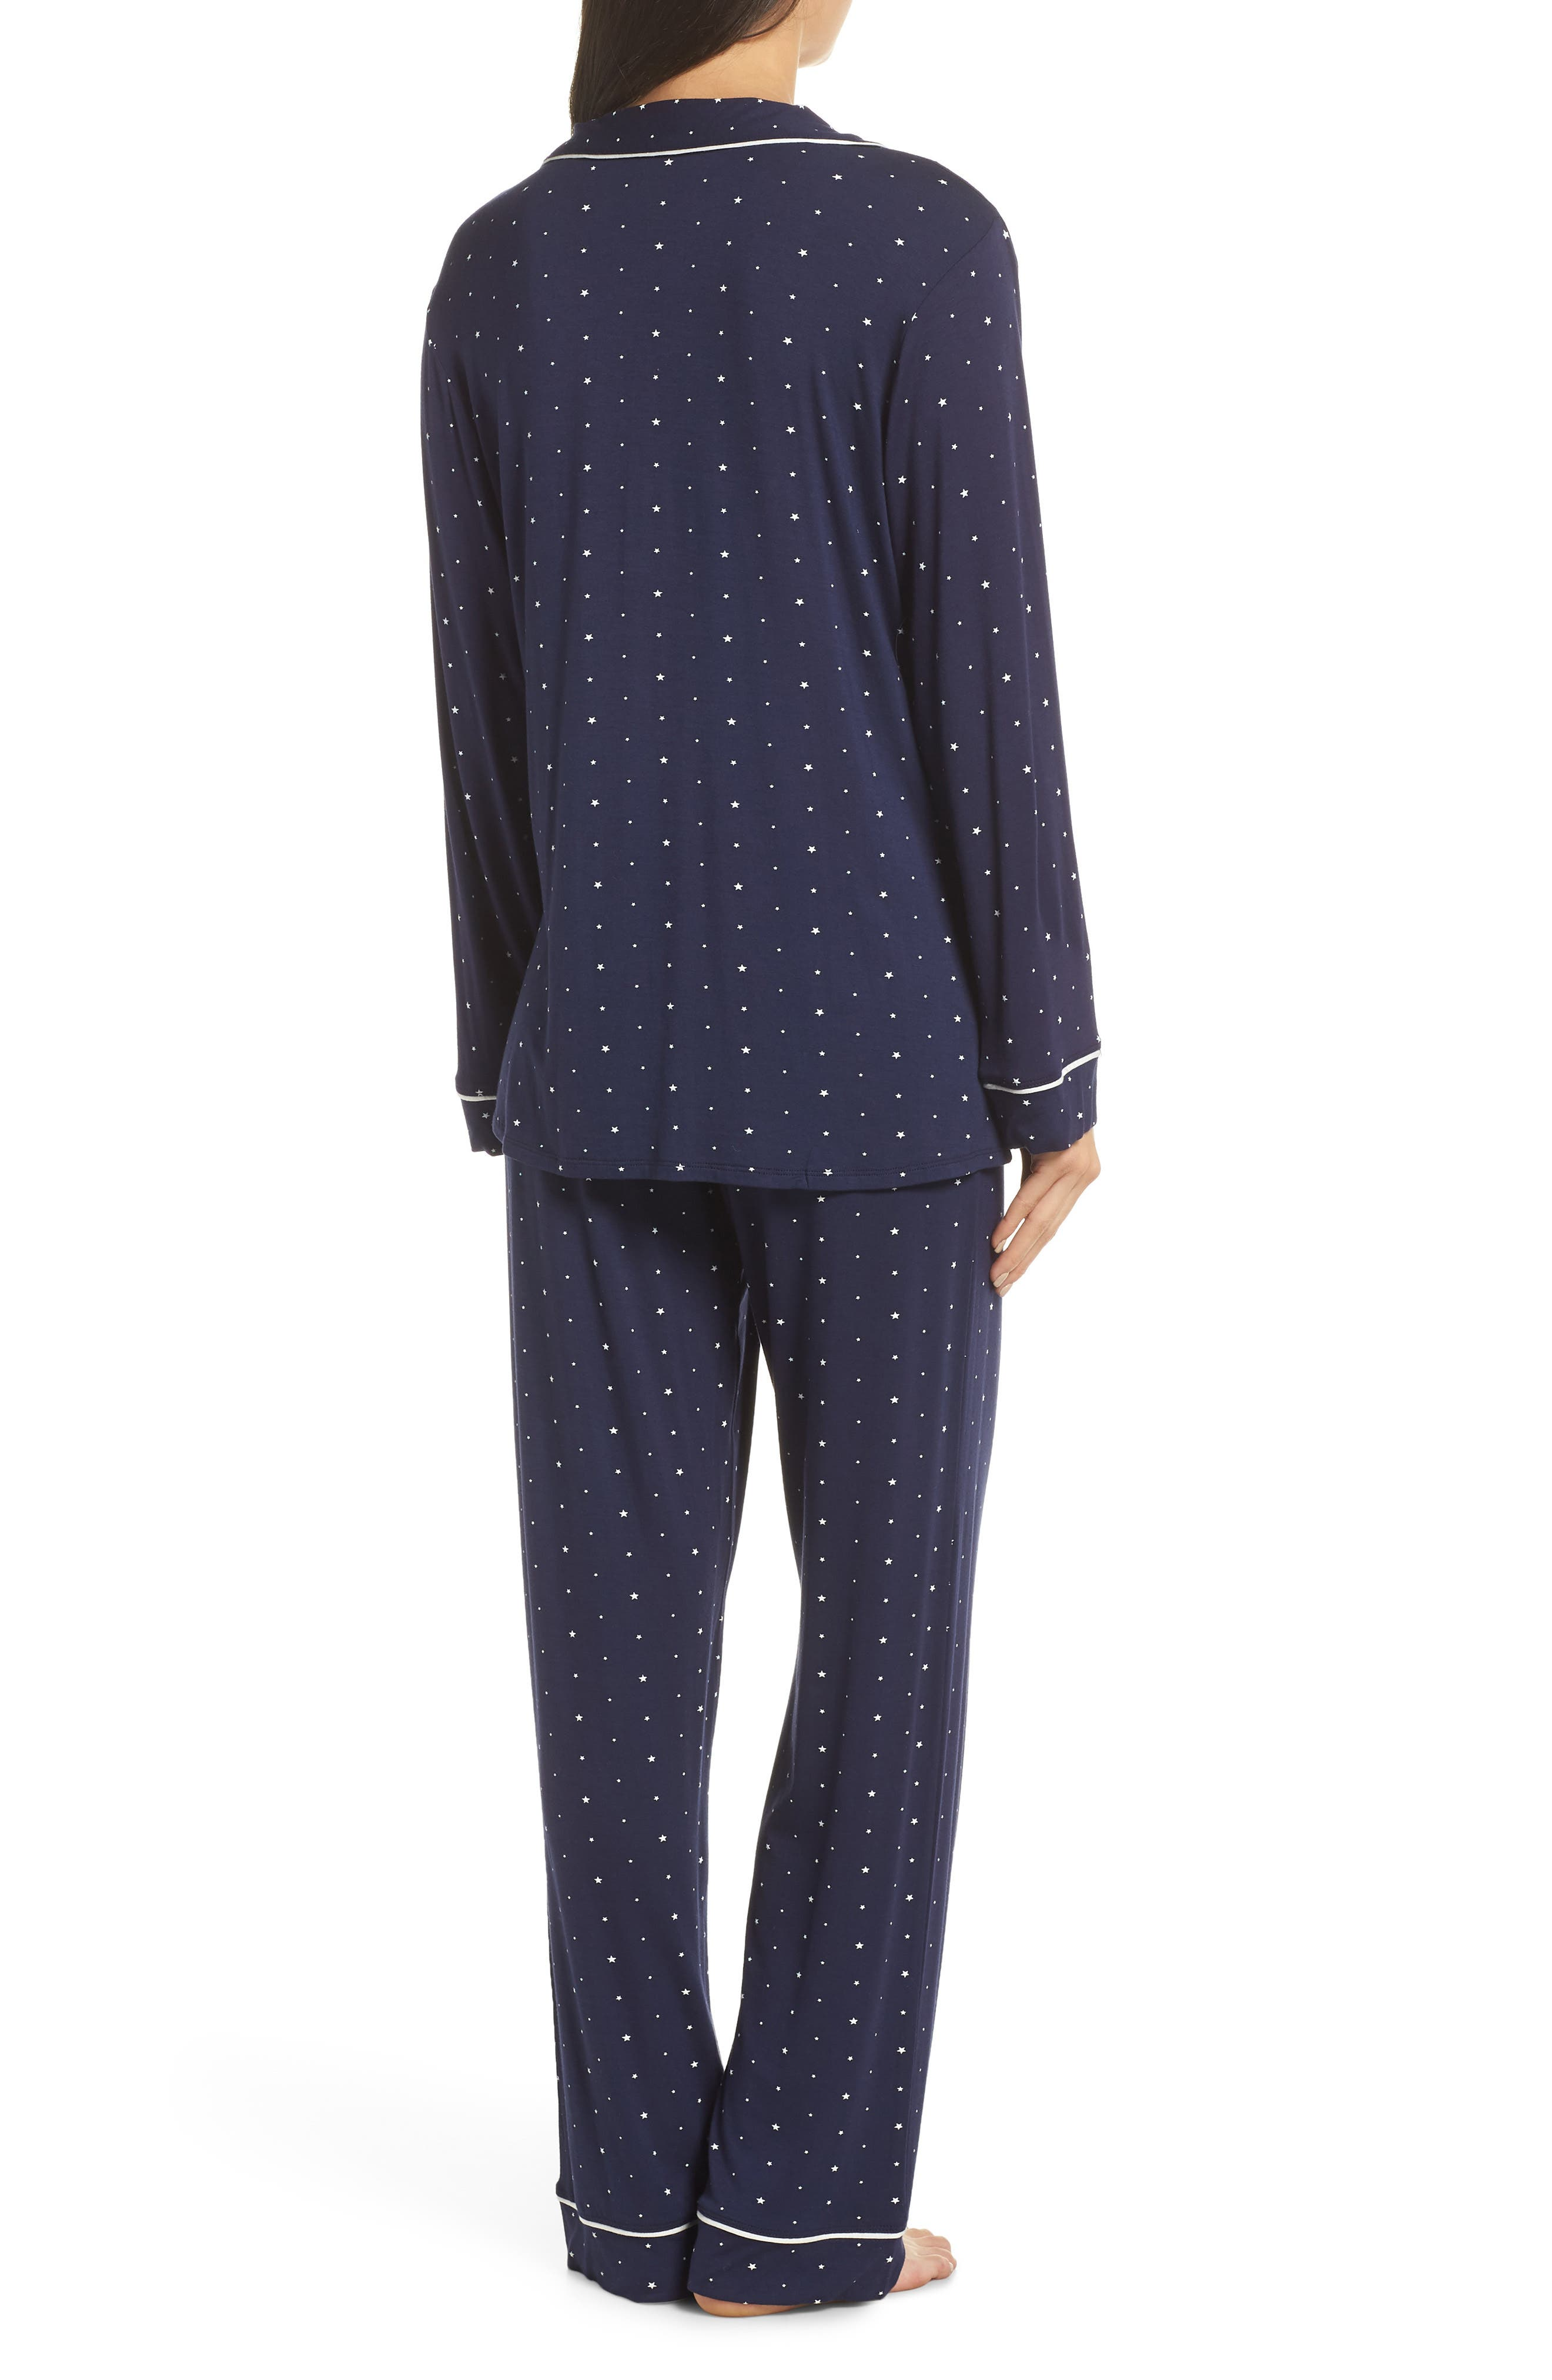 Sleep Chic Pajamas,                             Alternate thumbnail 2, color,                             NORTHER STARS/ IVORY